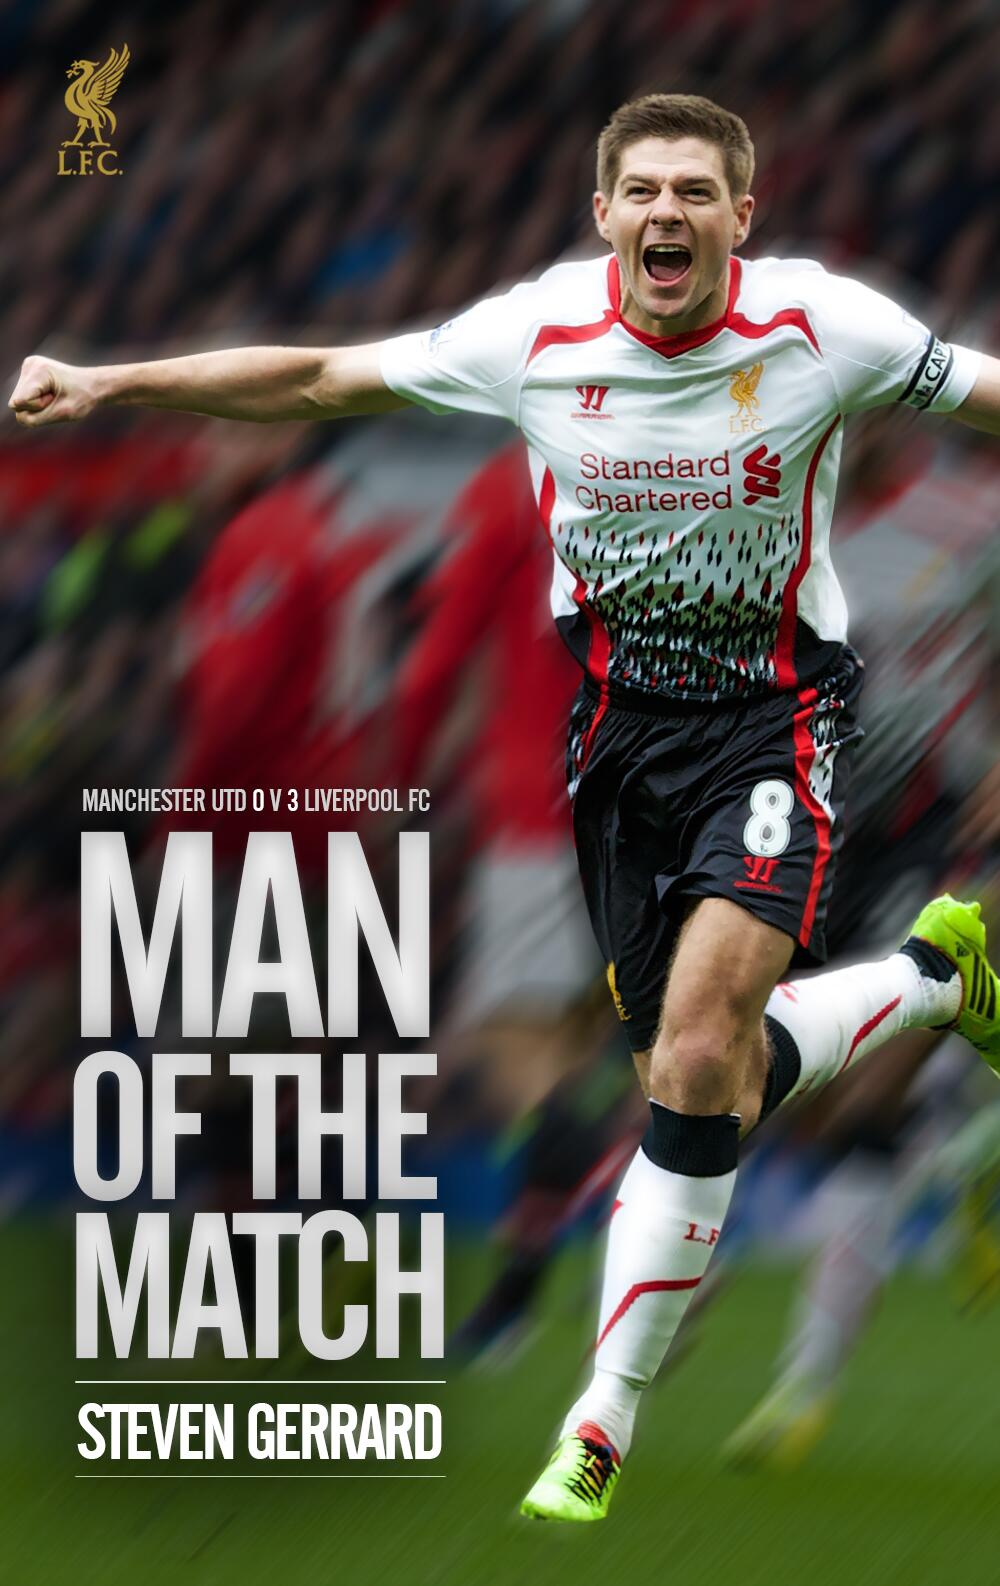 Congratulations to Steven Gerrard, who supporters have voted as their #LFC Man of the Match against Manchester United http://t.co/tIDhgg9bB5